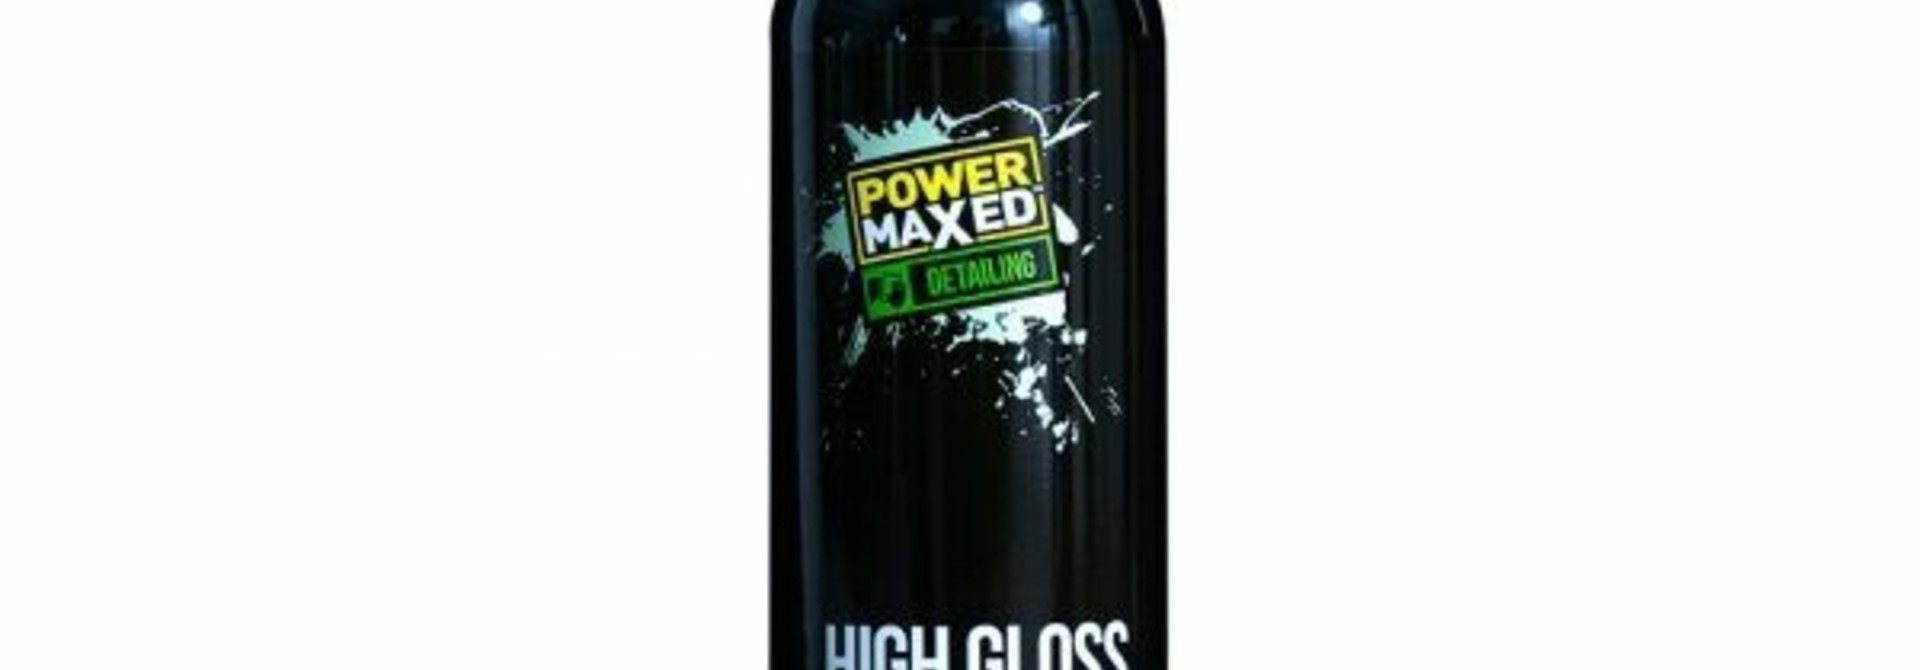 High Gloss Paint Sealant